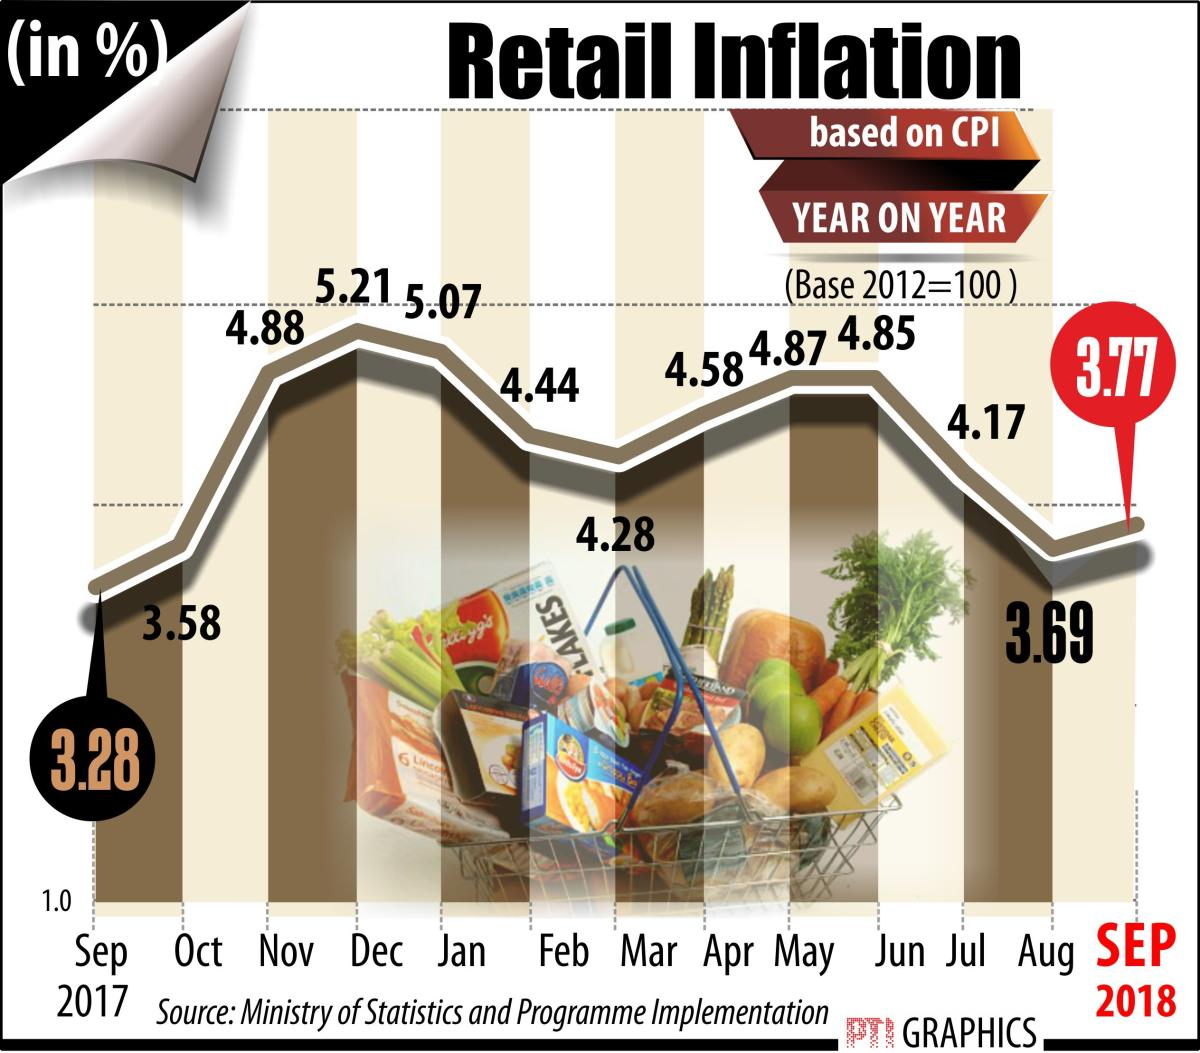 India's consumer price inflation inched up marginally to 3.77% in September backed by higher food and fuel prices while poor mining output dragged the industrial production growth to a three-month low of 4.3% in August.